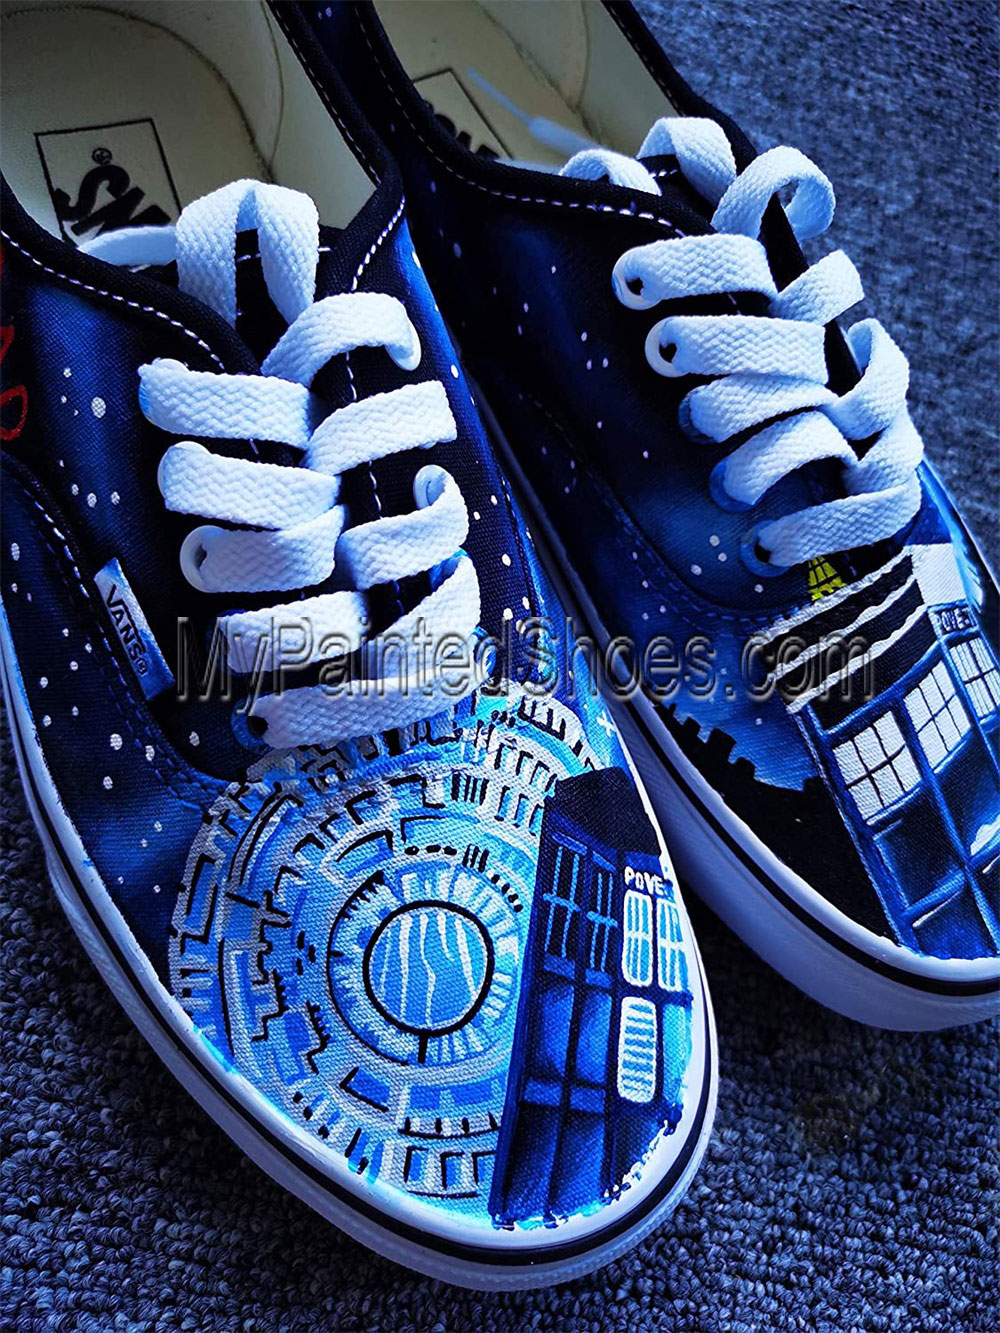 DR Who Shoes Doctors Who Shoes for Women Men Hand Painted Shoes-2